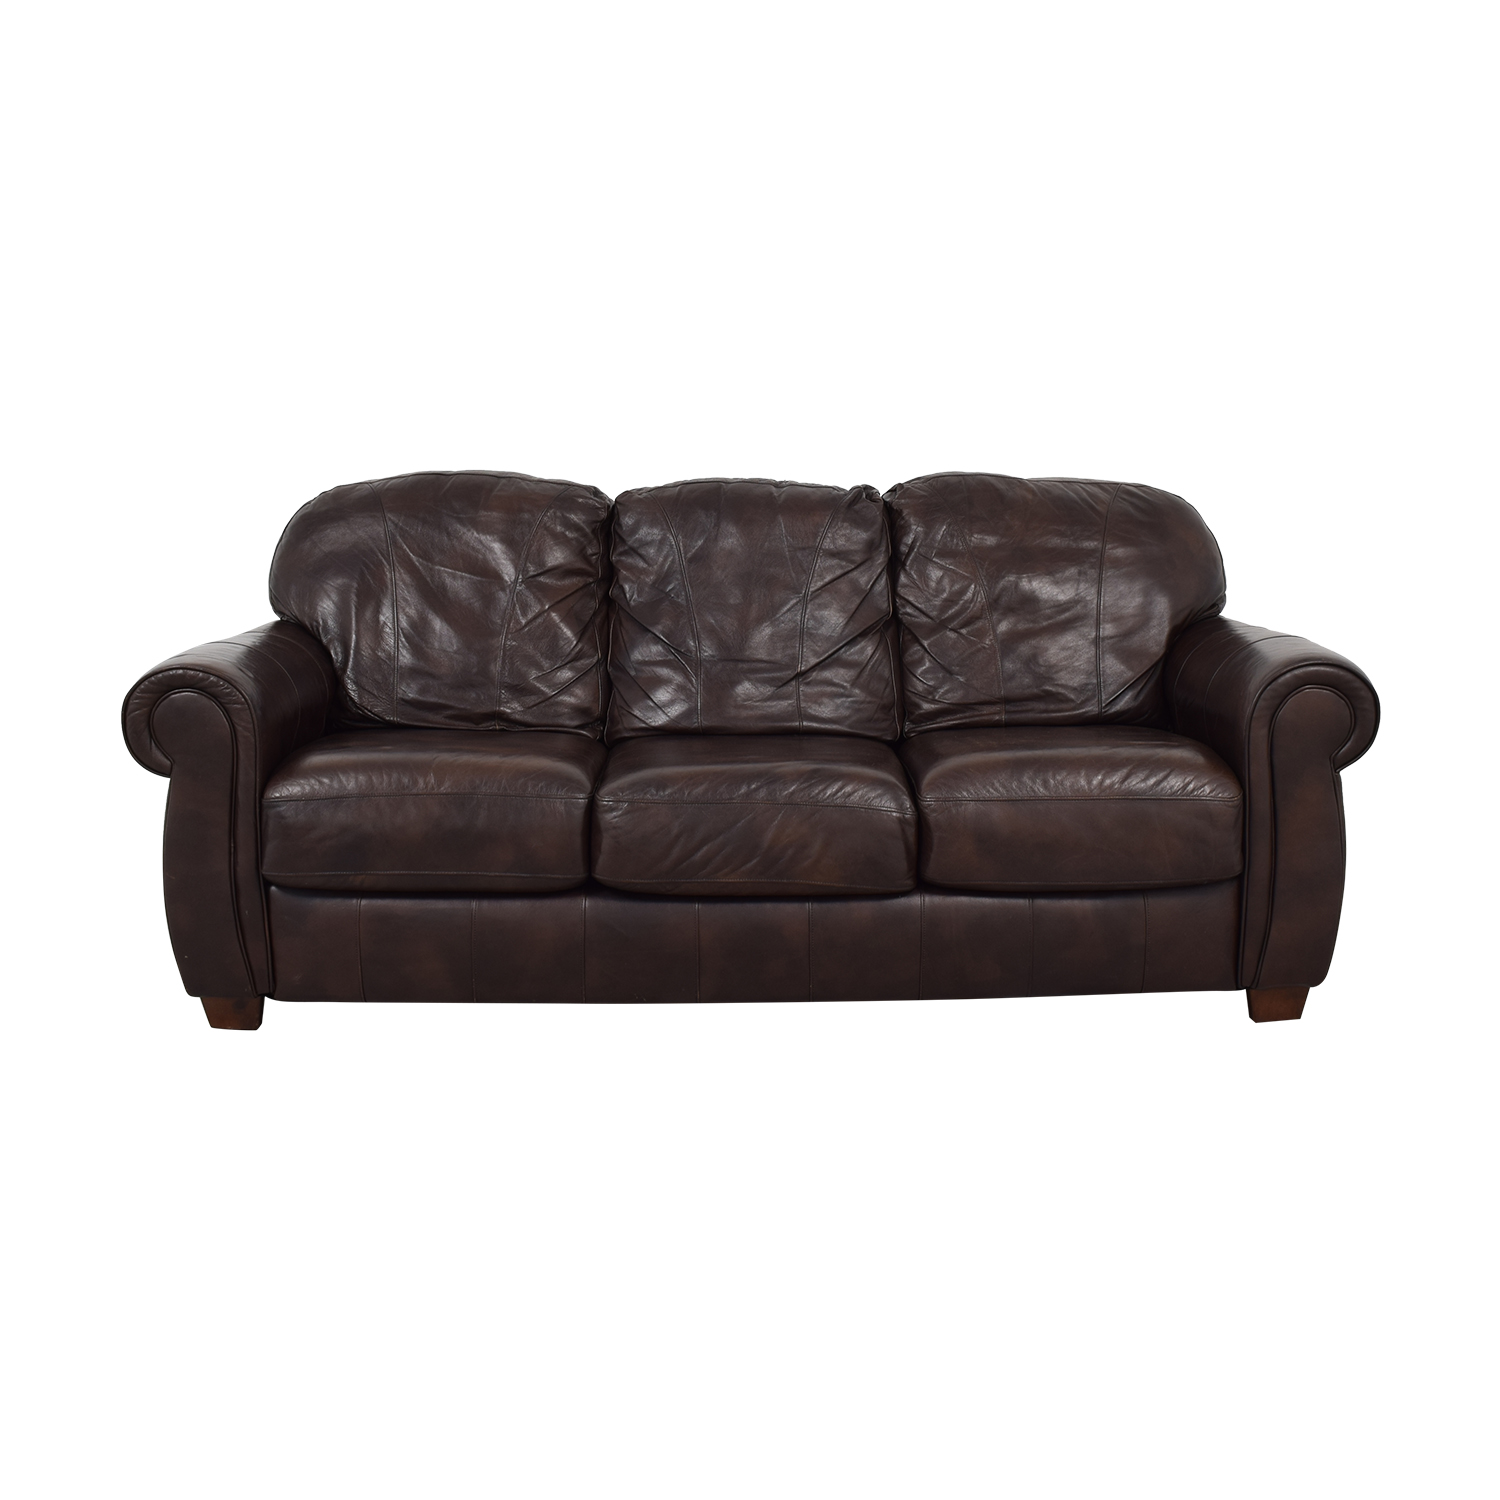 85 Off Lane Furniture Lane Leather Master Sofa Sofas